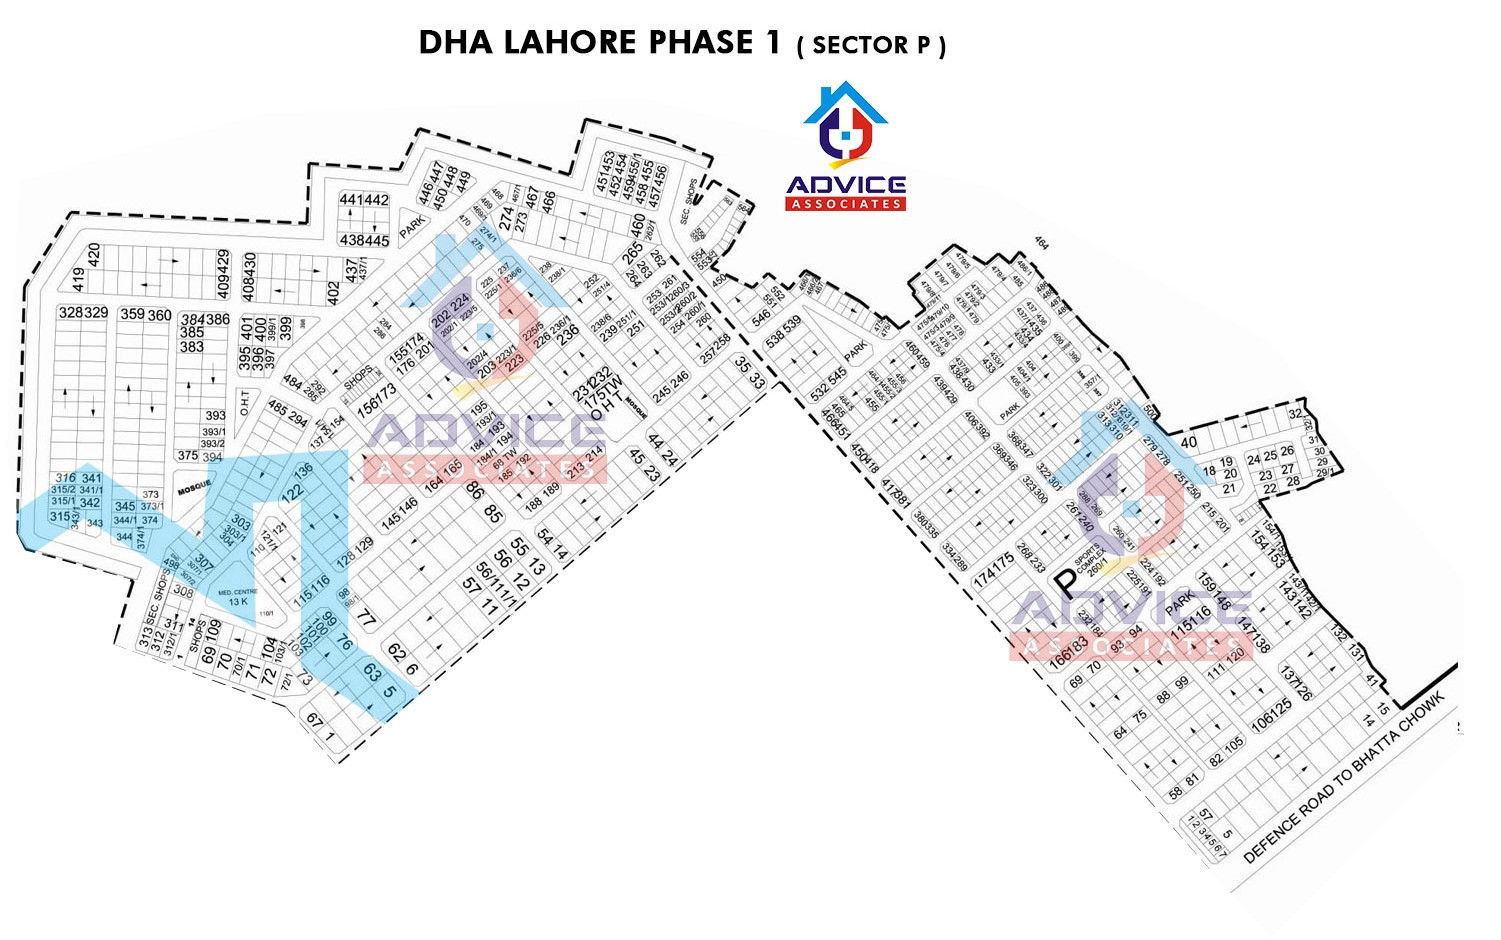 DHA Lahore Phase 1 sector P